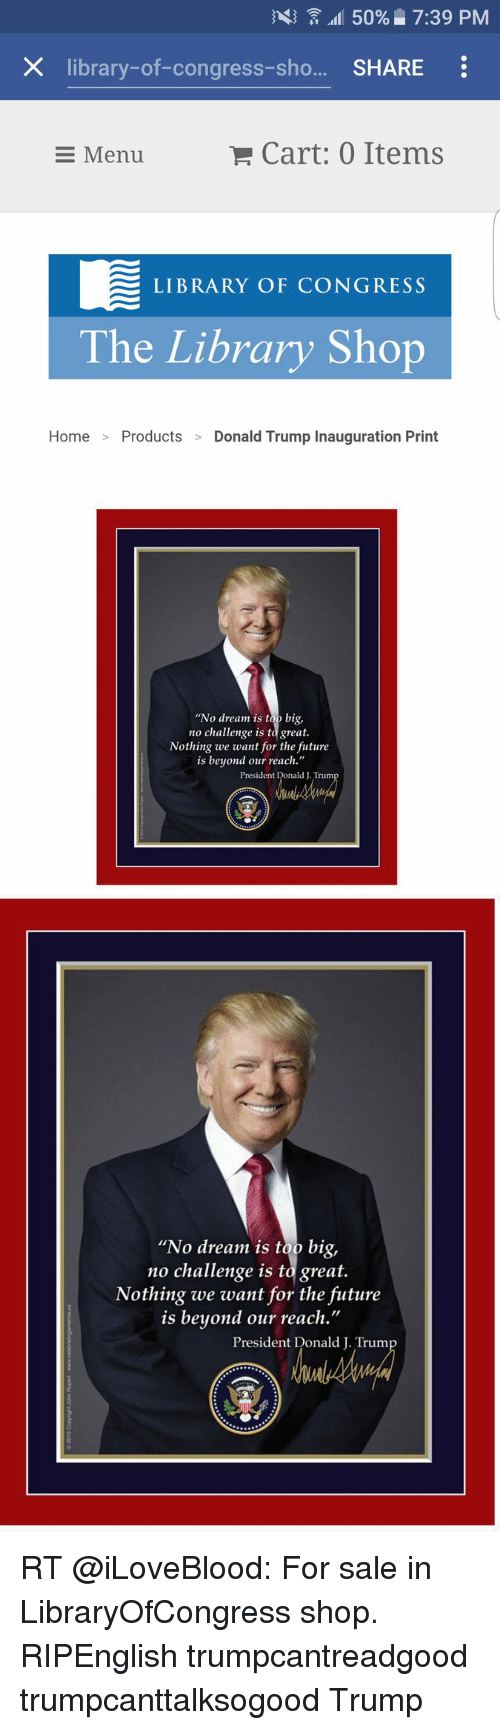 """Donald Trump Inauguration: 33 50% 7:39 PM  X library-of-congress-sho  SHARE  Cart: 0 Items  E Menu  LIBRARY OF CONGRESS  The Library Shop  Home Products  Donald Trump Inauguration Print  """"No dream is too big,  no challenge is to great.  Nothing we want for the future  is beyond our reach.""""  President Donald Trum   """"No dream is too big,  no challenge is to great.  Nothing we want for the future  is beyond our reach.  President Donald J. Trum RT @iLoveBlood: For sale in LibraryOfCongress shop. RIPEnglish trumpcantreadgood trumpcanttalksogood Trump"""